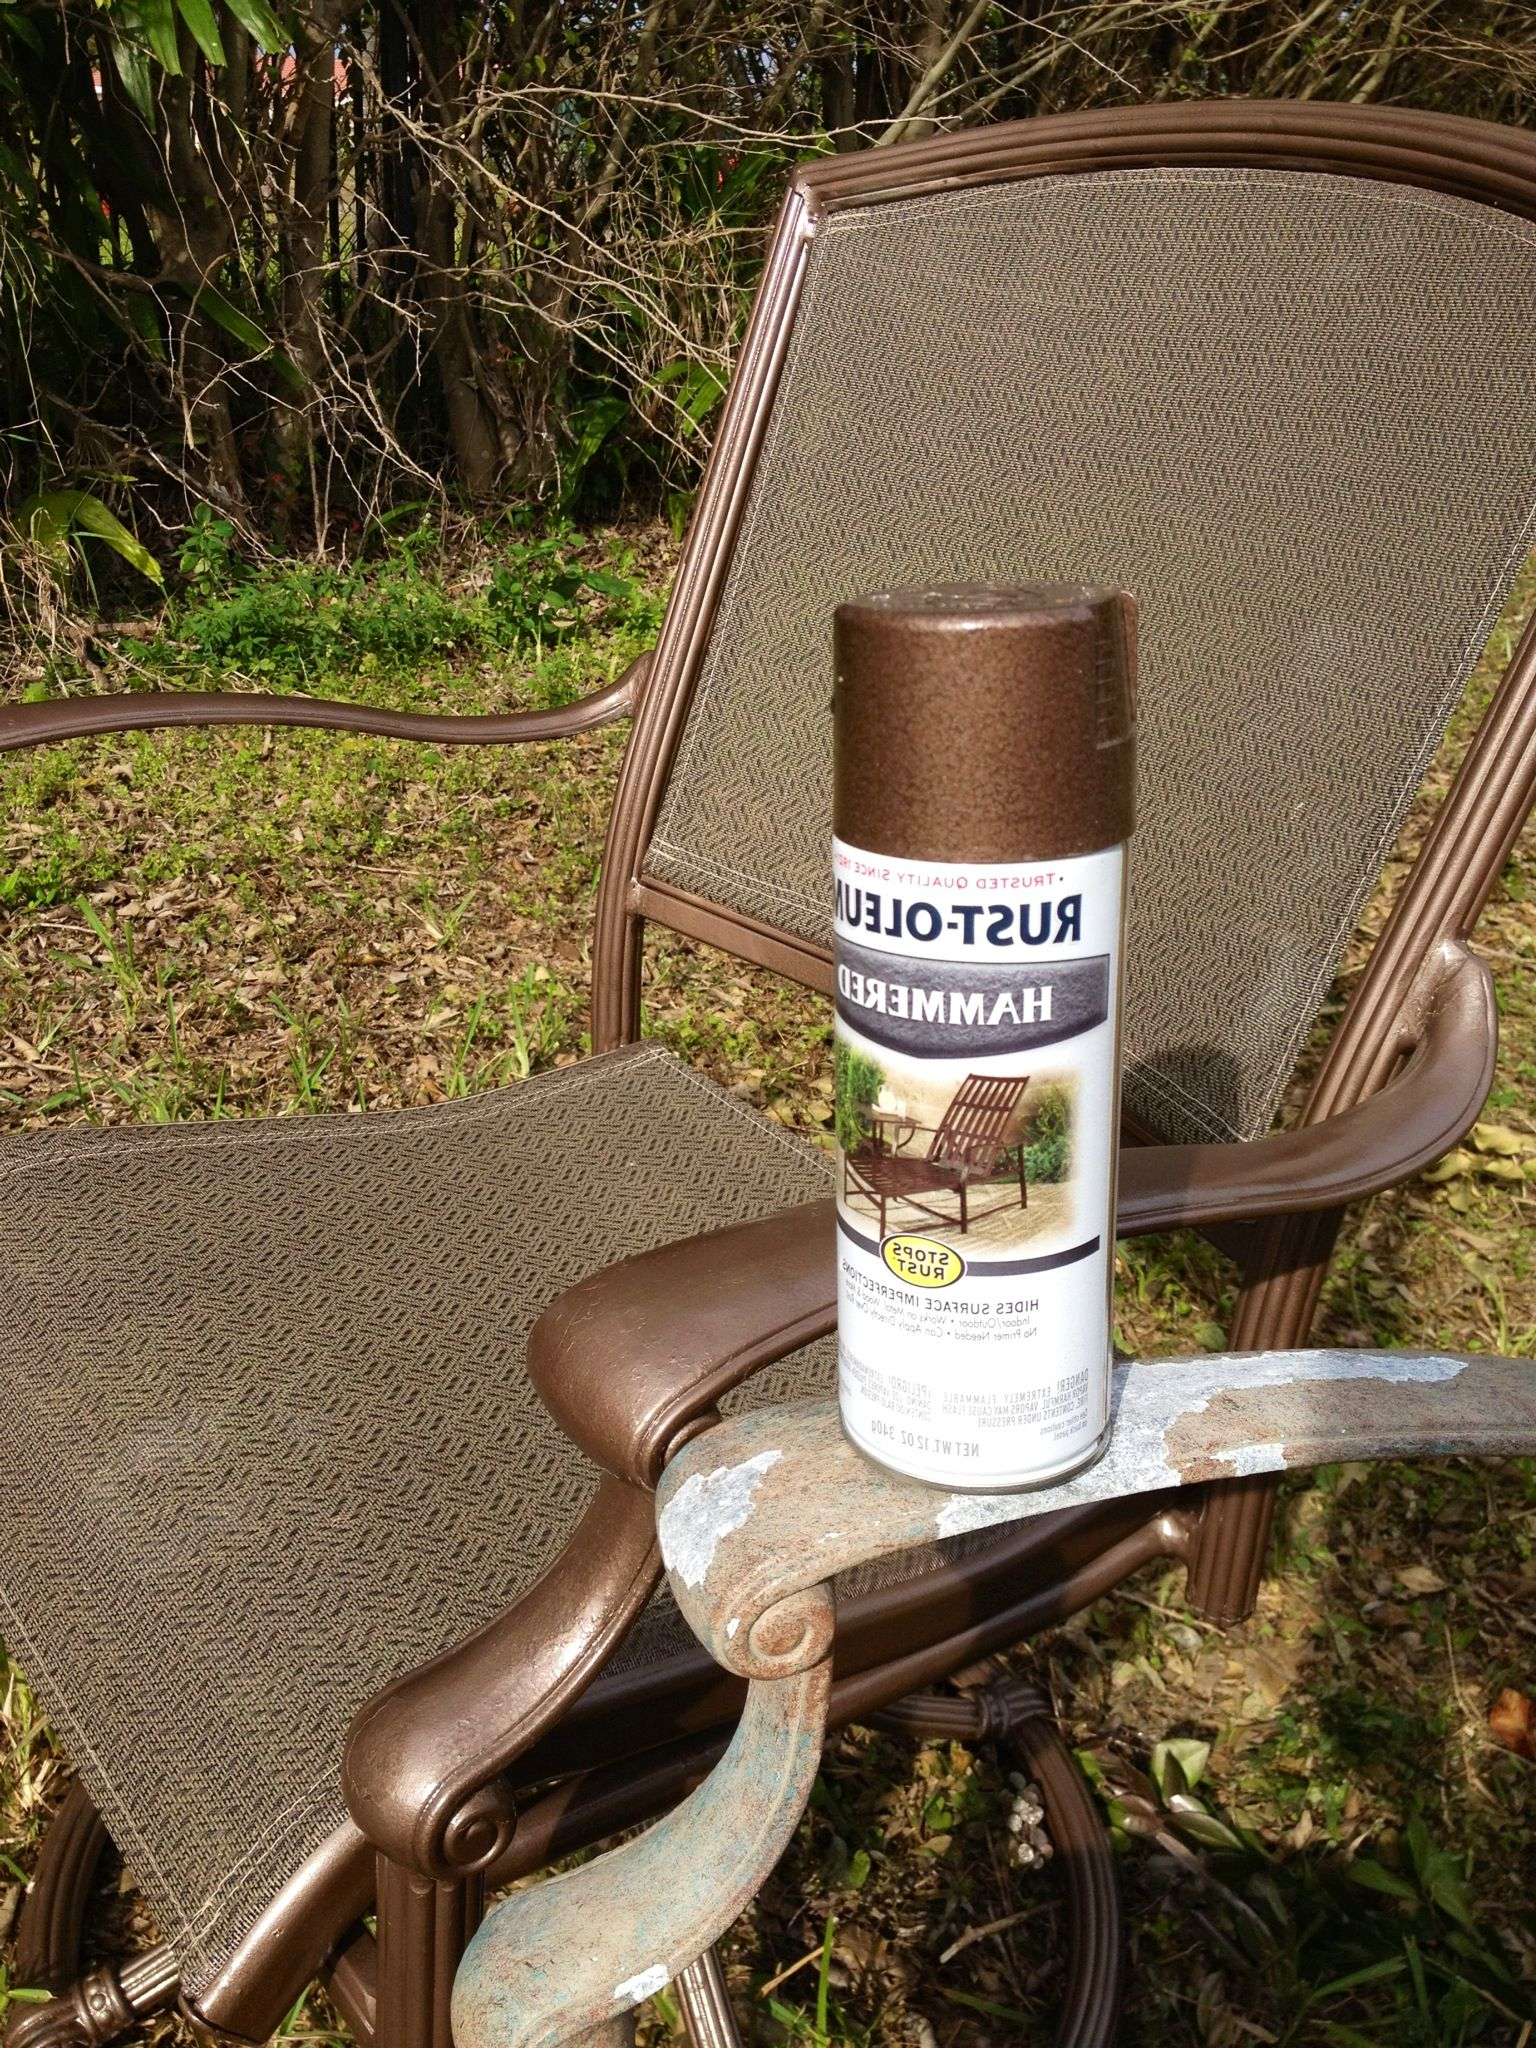 Rustoleum Hammered Metallic Spray Paint For My Upcycled Within Most Up To Date 2 Person Hammered Bronze Iron Outdoor Swings (View 24 of 30)